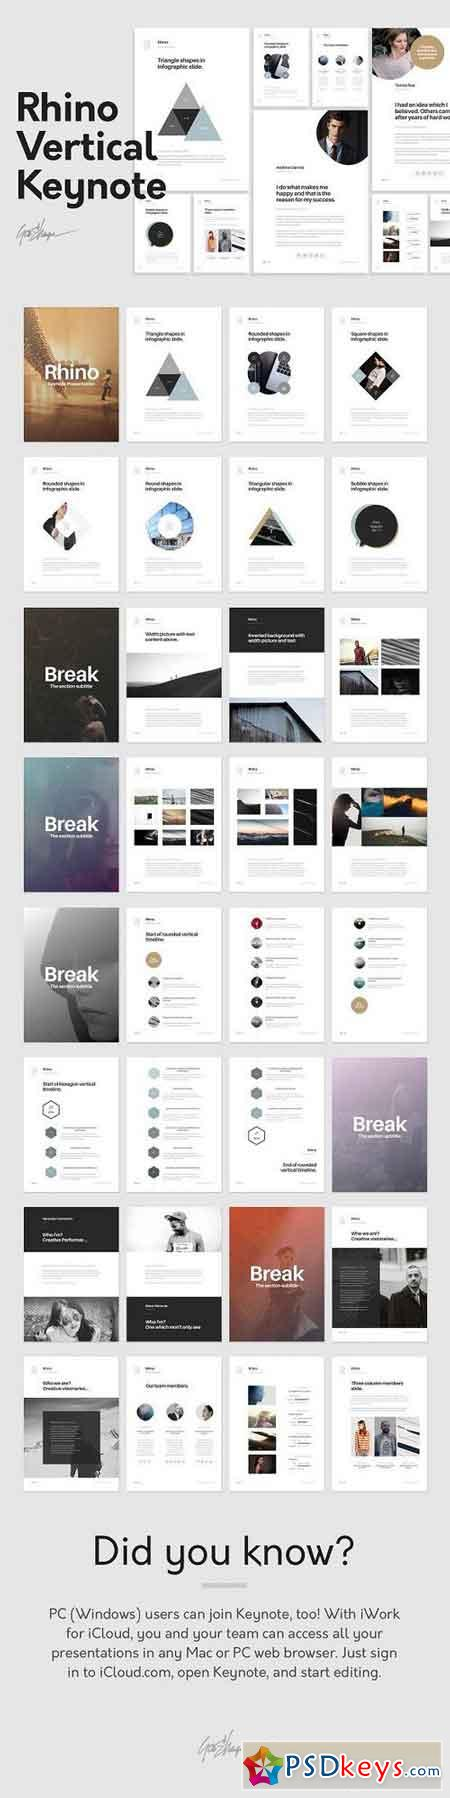 Rhino Vertical Keynote Template 1132773